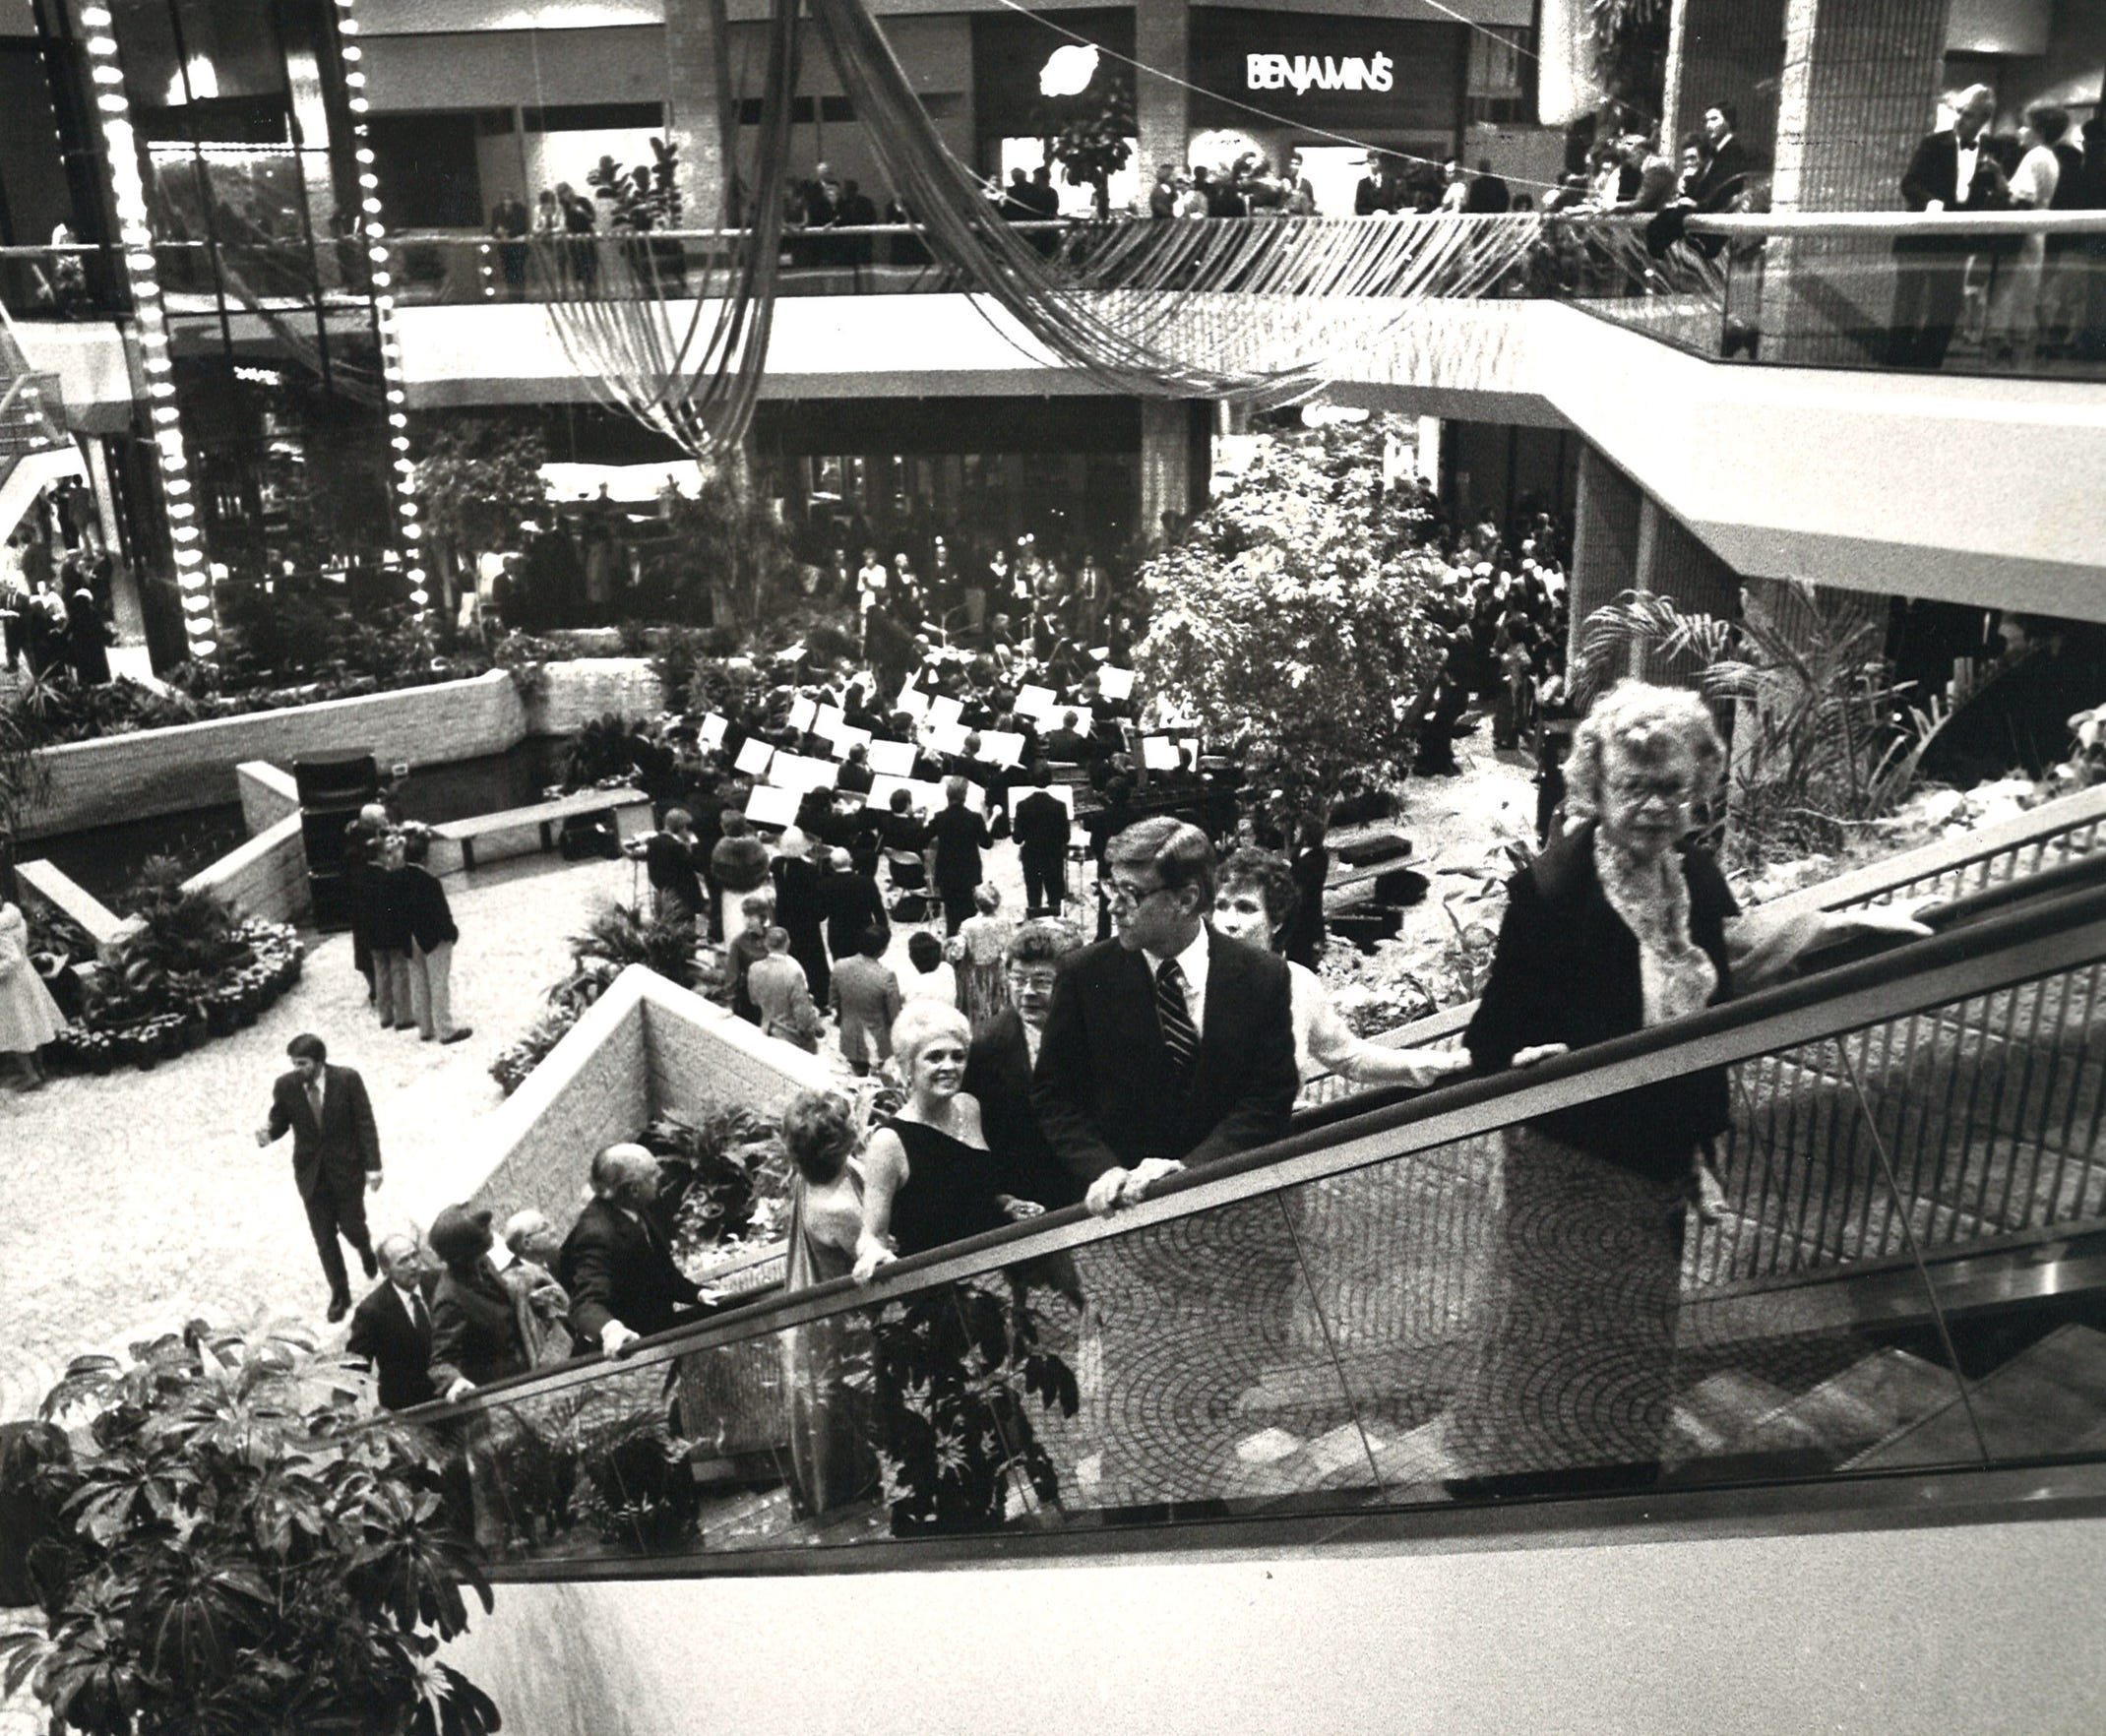 The Corpus Christi Symphony Guild hosted a sneak preview of Sunrise Mall on Feb. 2, 1981.